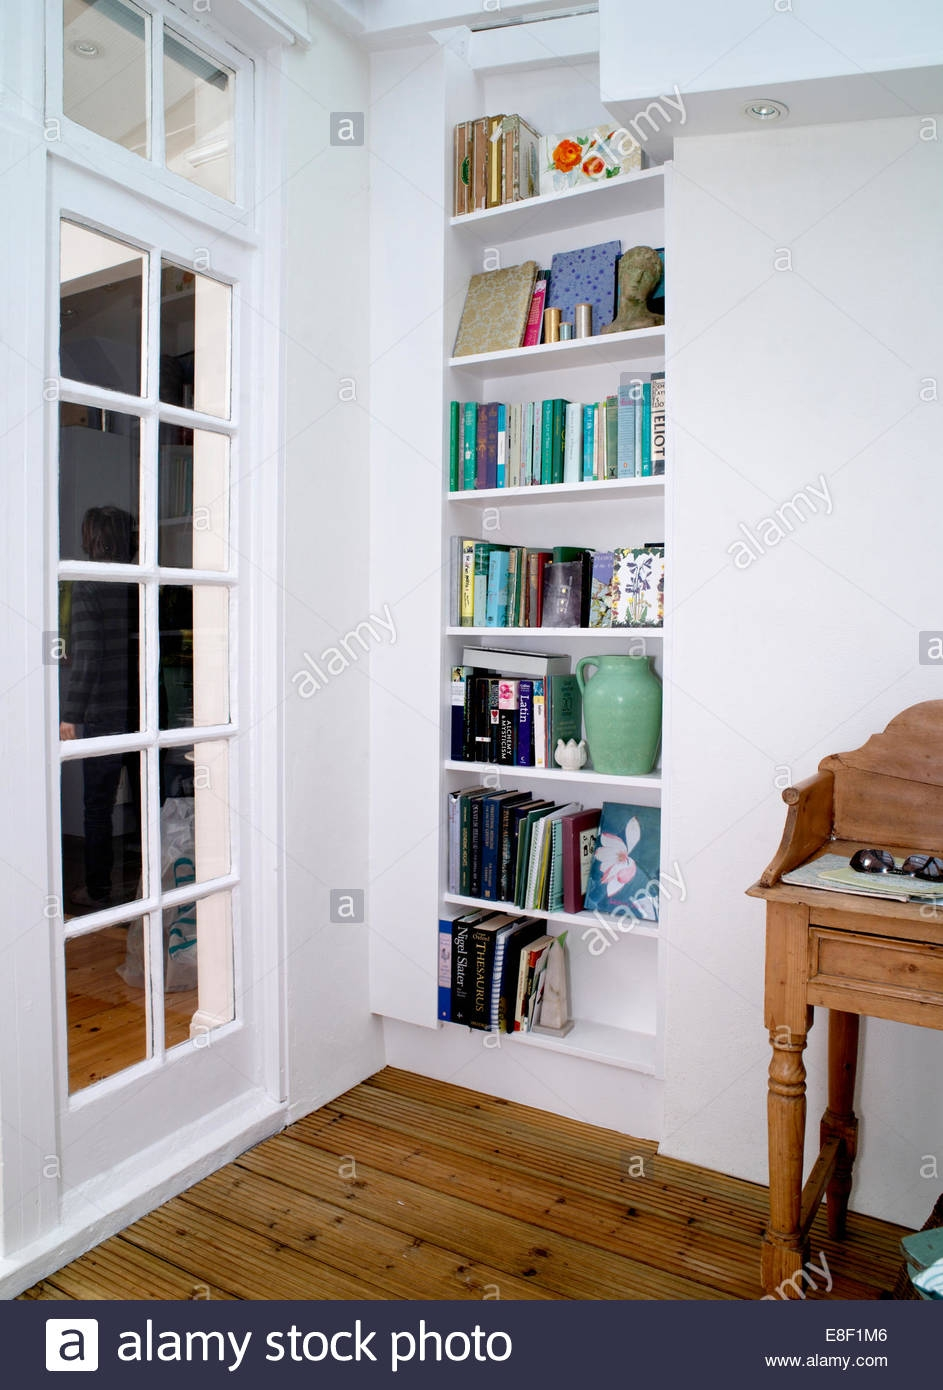 Shelving Beside Glazed Door In Self Build Conservatory Study Stock Pertaining To Study Shelving (View 11 of 15)